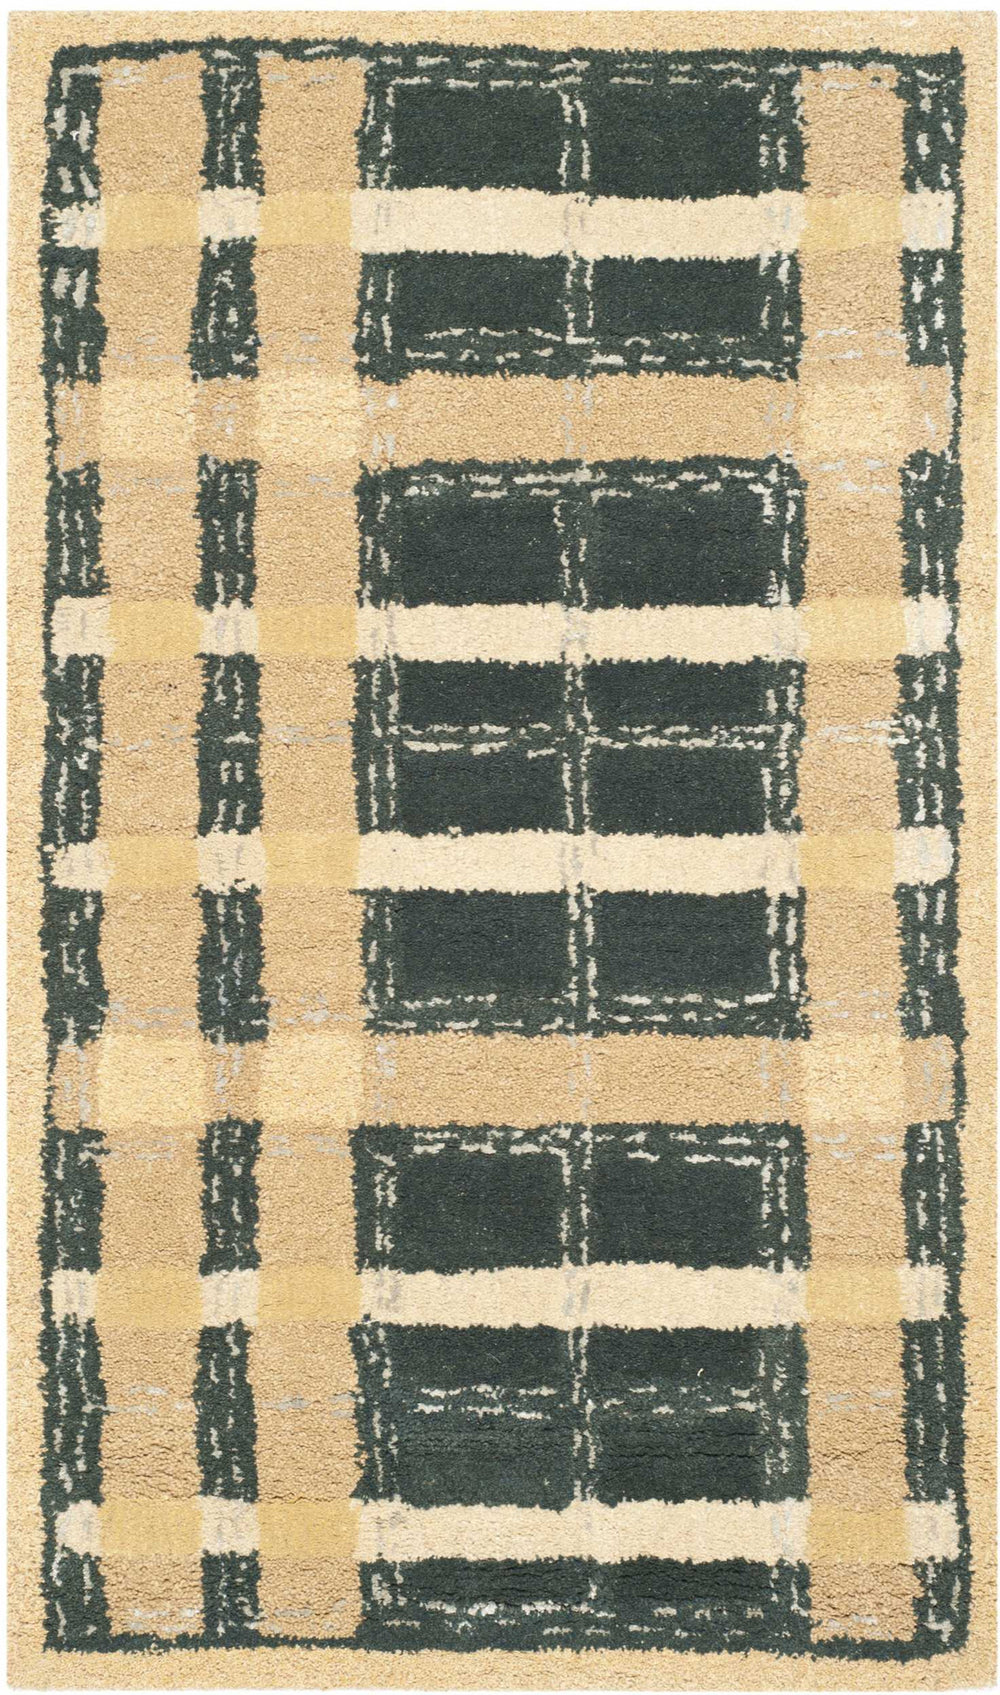 Safavieh Martha Stewart Colorweave Plaid Area Rug